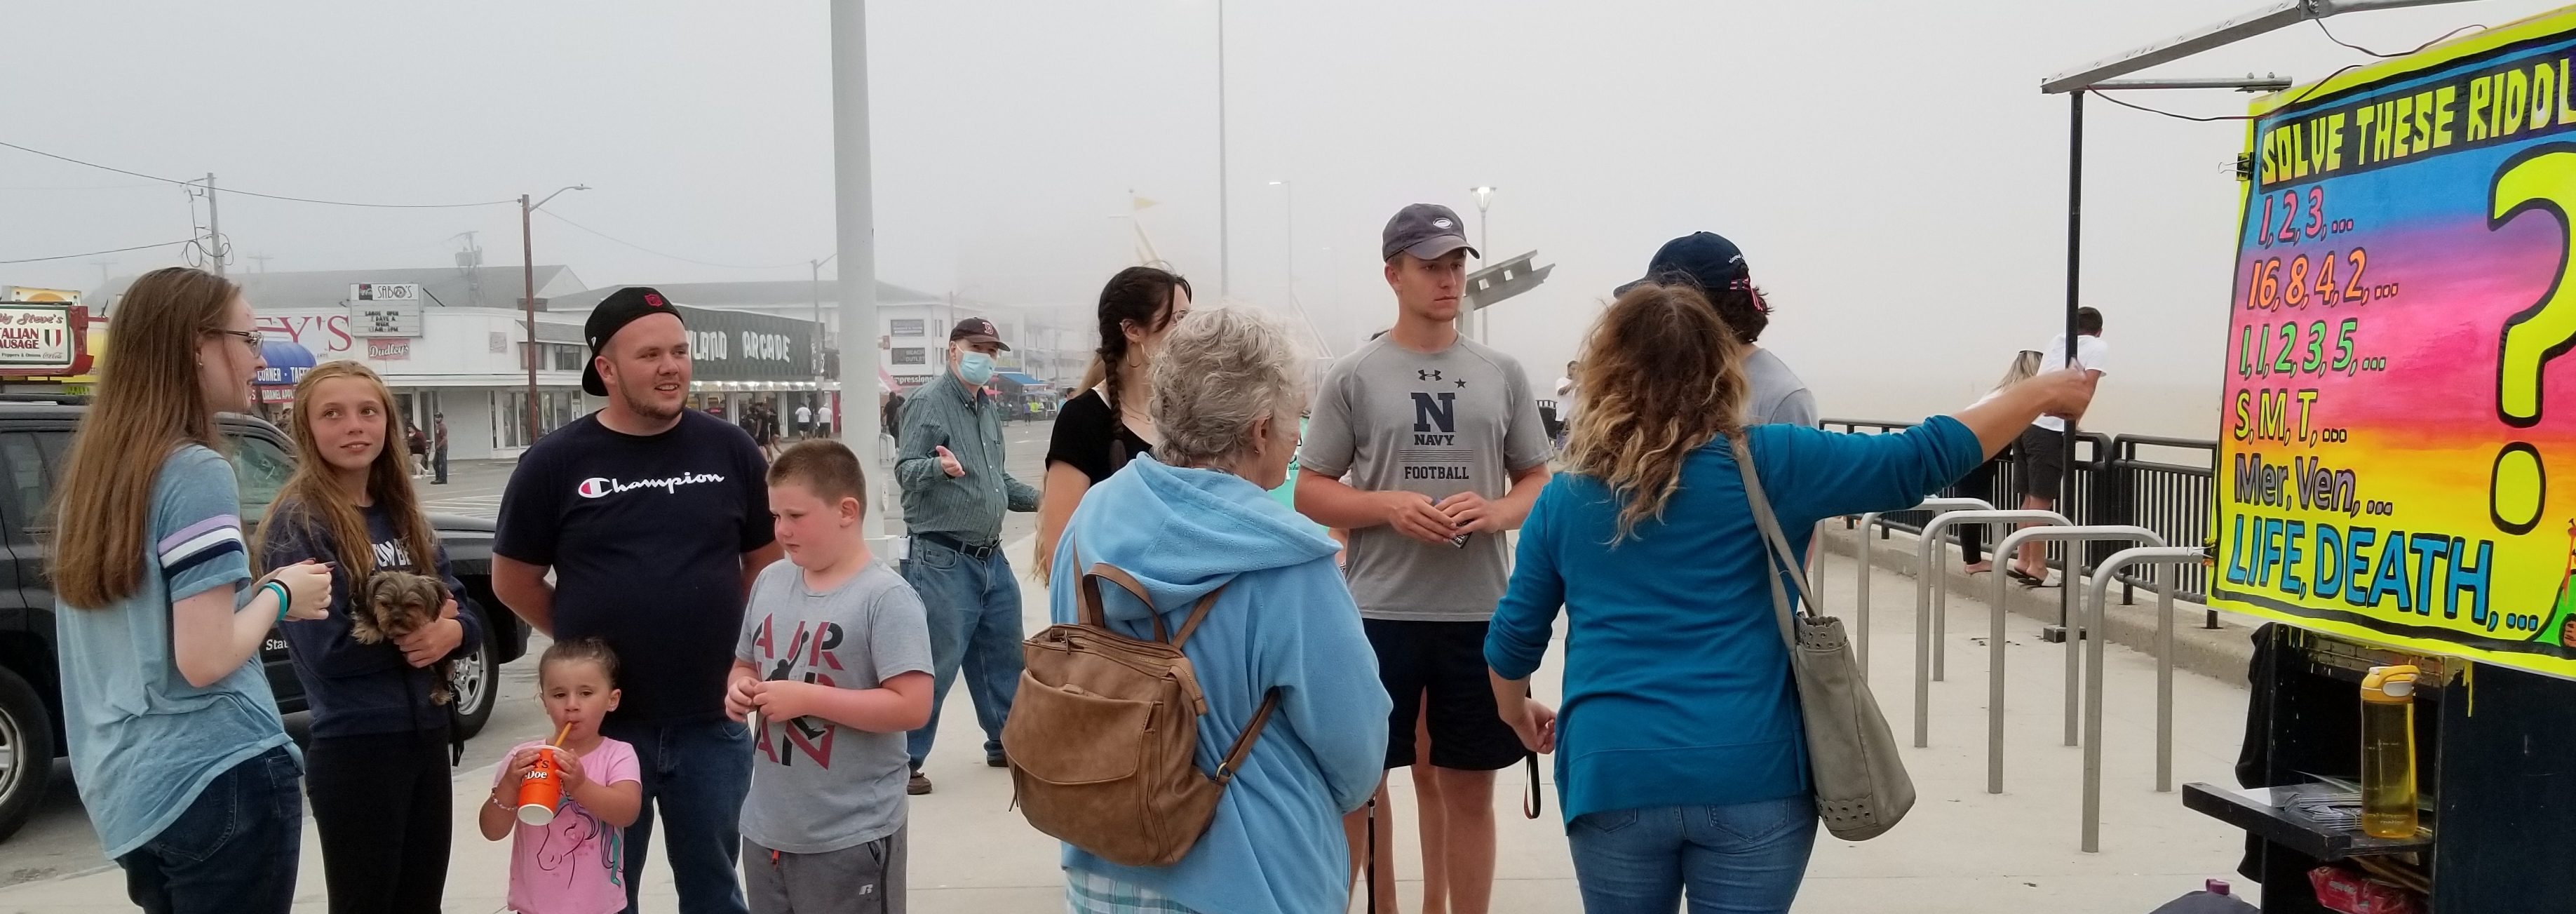 "This is called ""Triple Evangelism."" Faith is sharing Jesus with a family on the left. Terry and Patrice are talking with a family on the right. And if you look in the back, Wayne is sharing Jesus there.   This is NOT uncommon at the beach!"